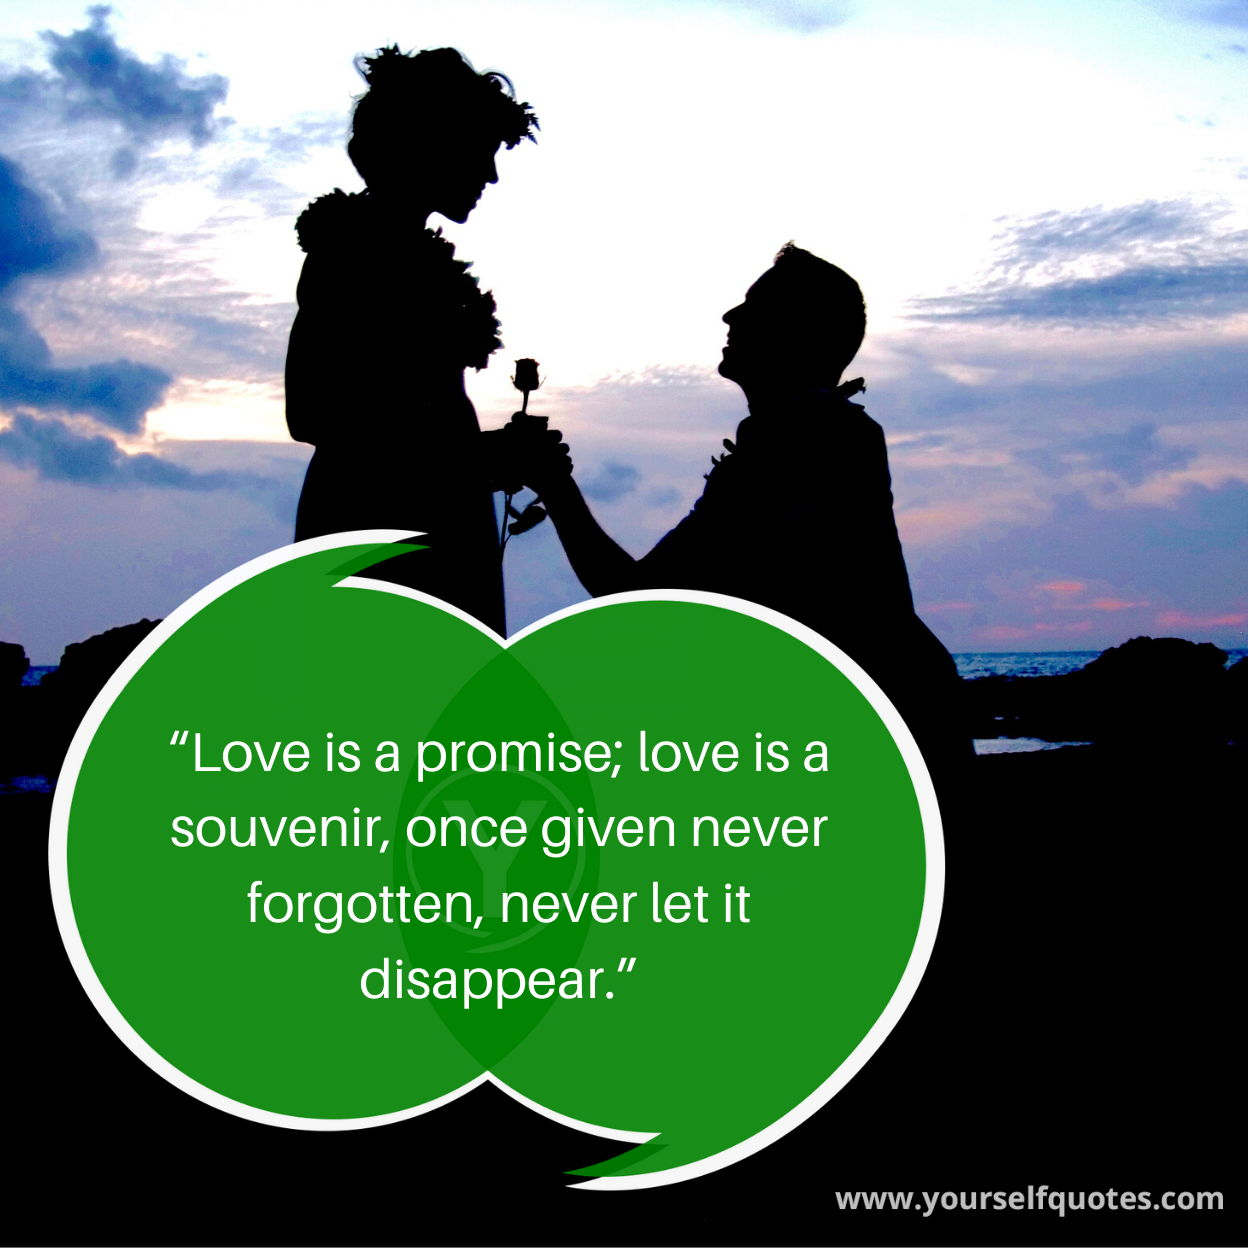 Quotes on Love Images